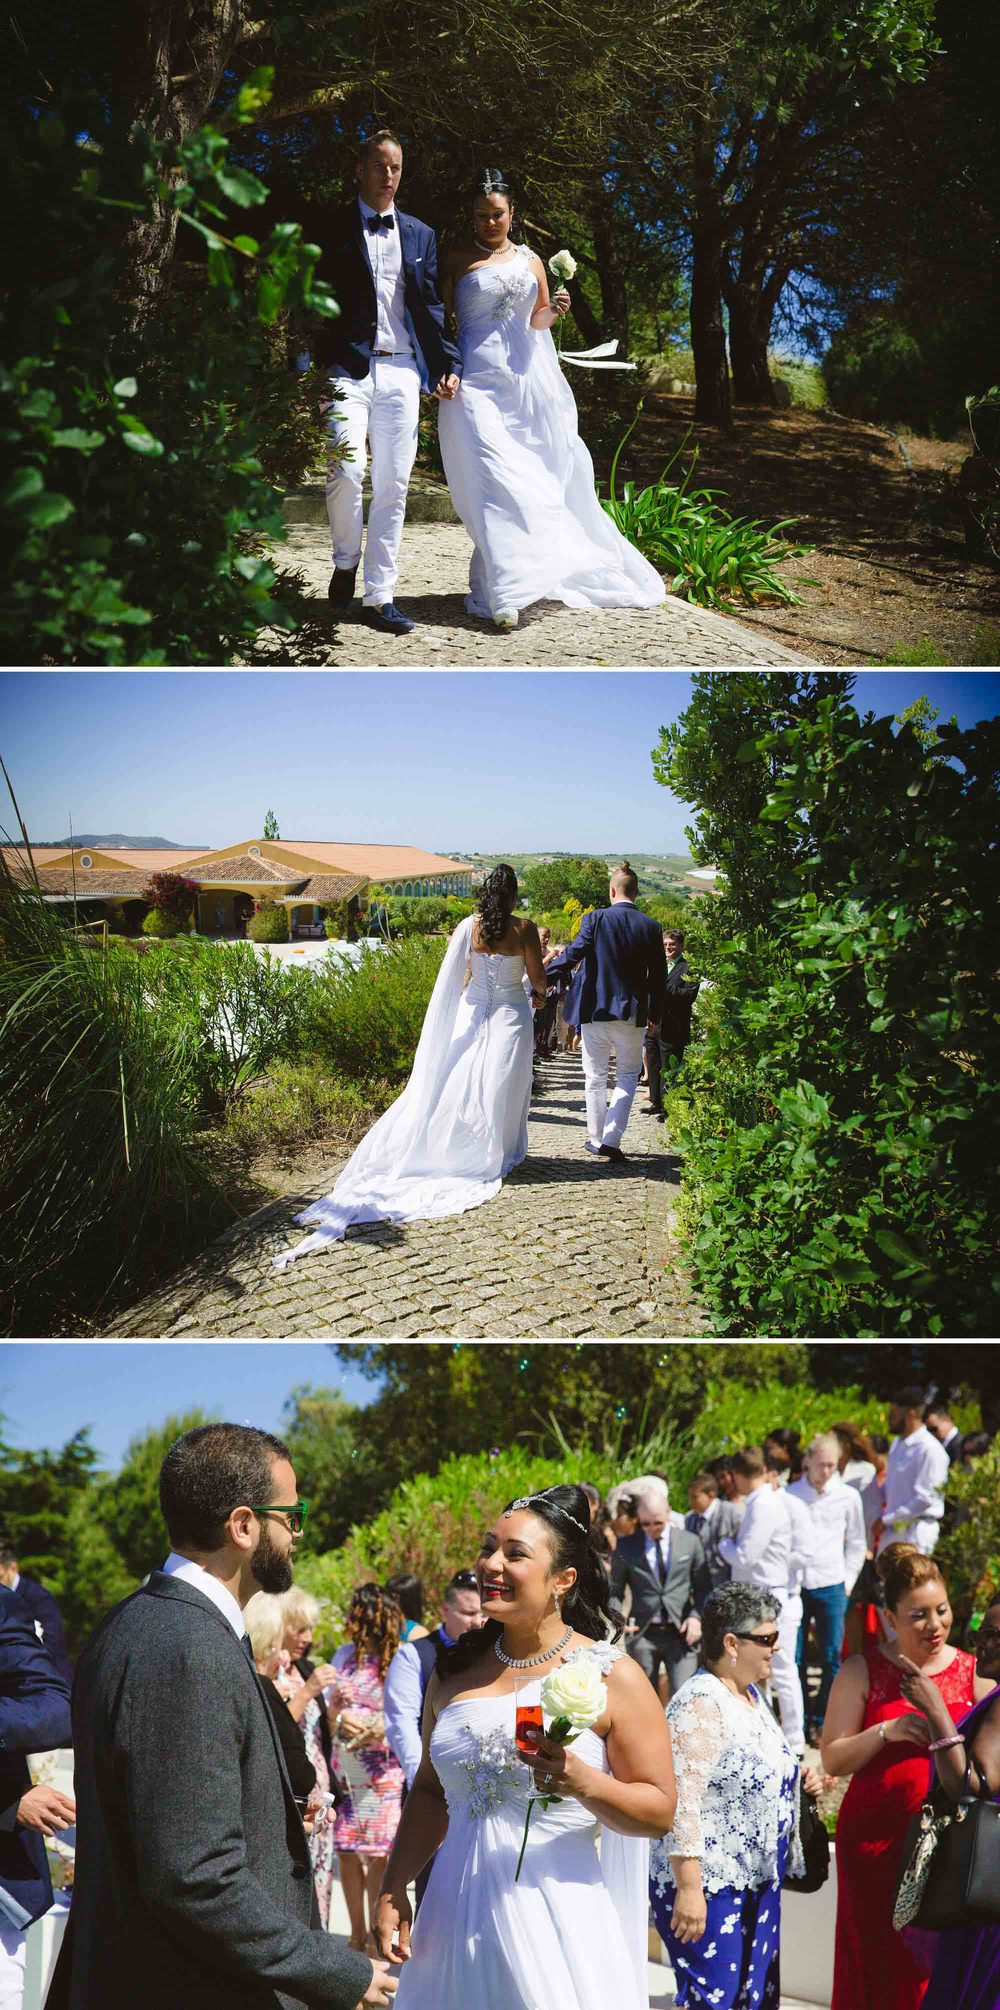 Portugal-Wedding-Photographer-75.jpg